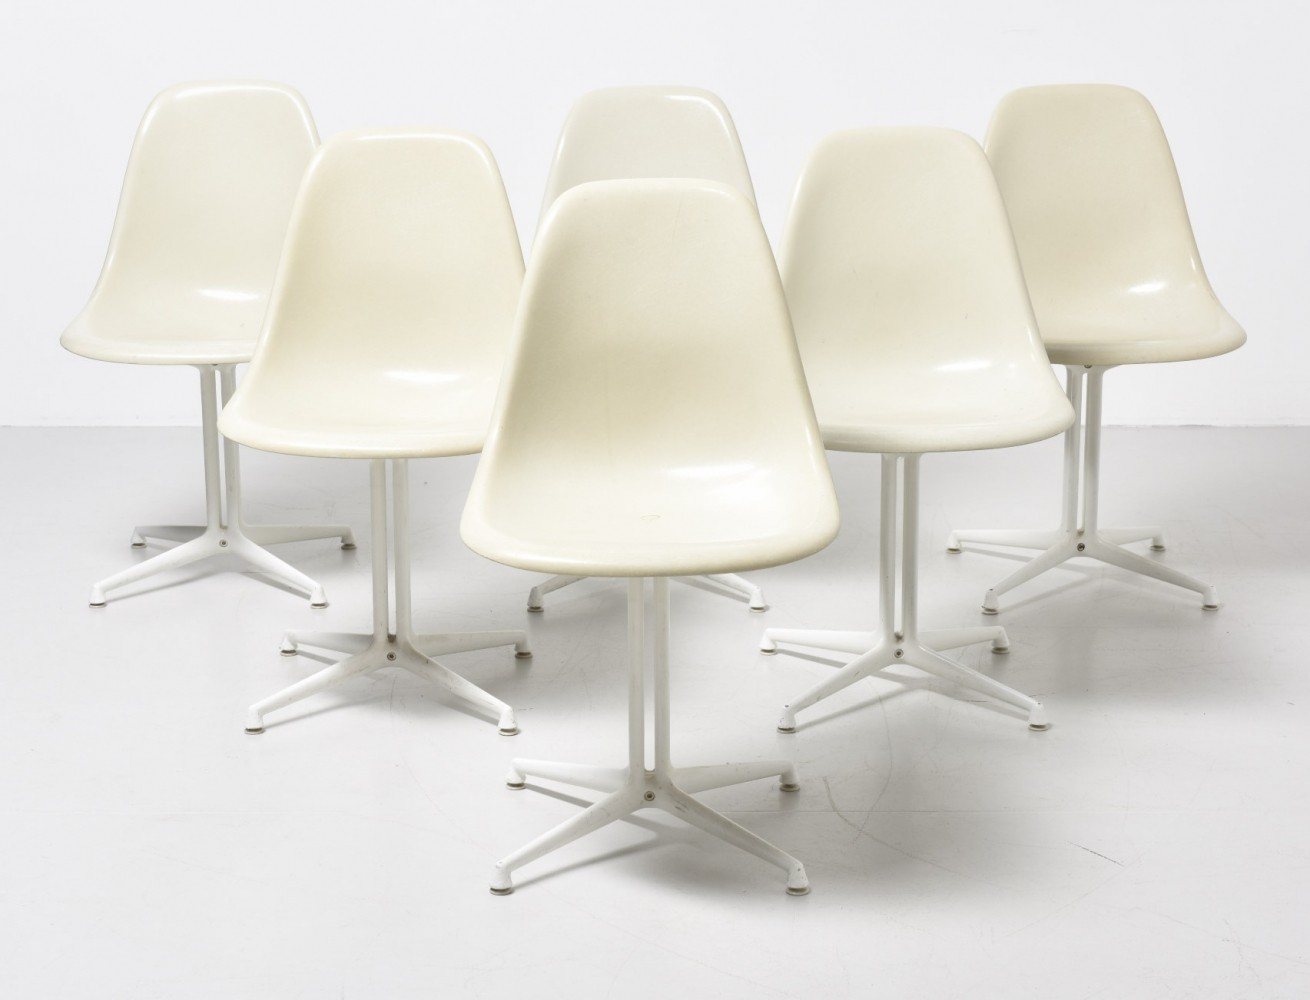 Set of 6 DSW - La Fonda base dinner chairs by Charles & Ray Eames for Vitra, 1960s